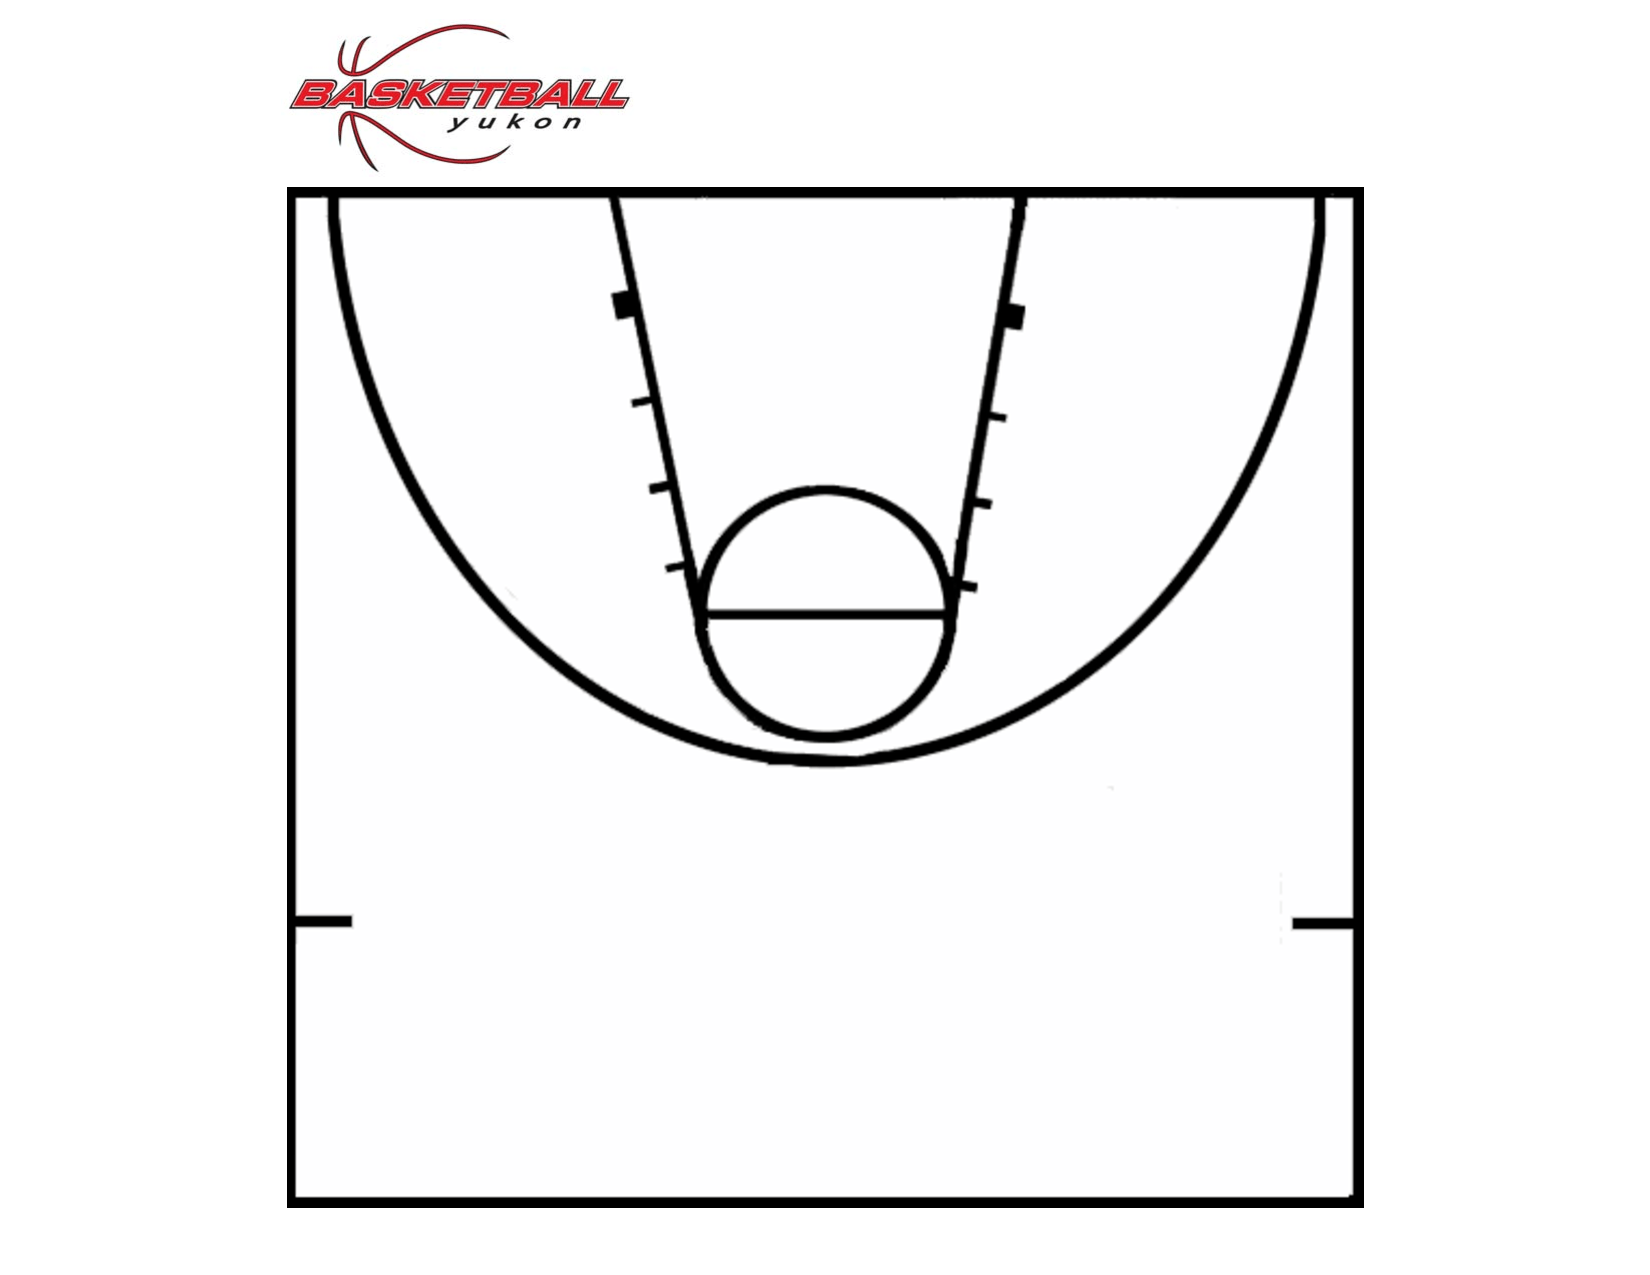 Basketball Court Diagram Printable Diagrams